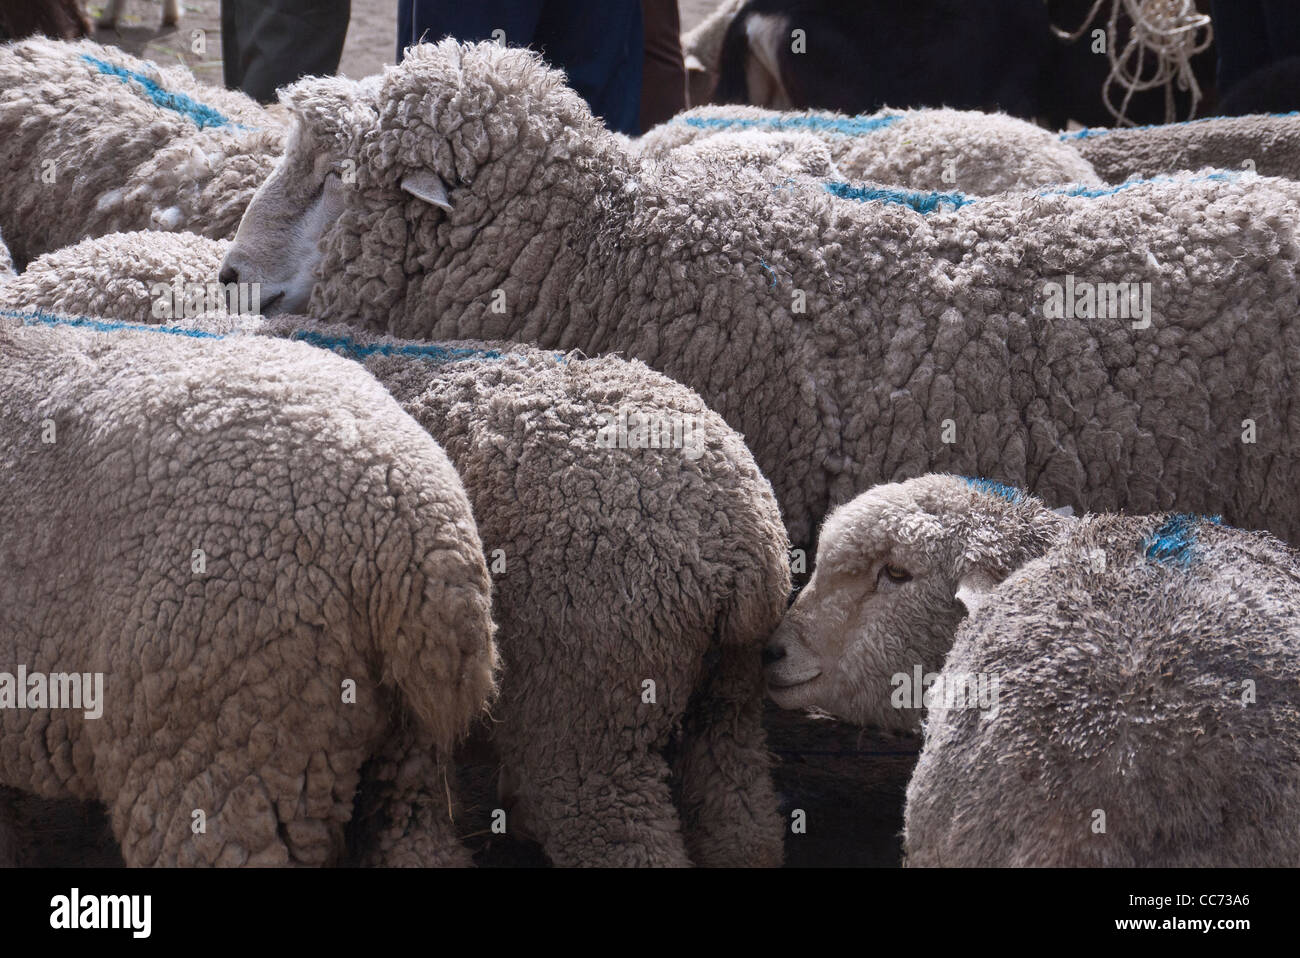 A herd of unshorn sheep are standing side by side, with blue lines painted on their backs, at the market in Saquisili, Stock Photo